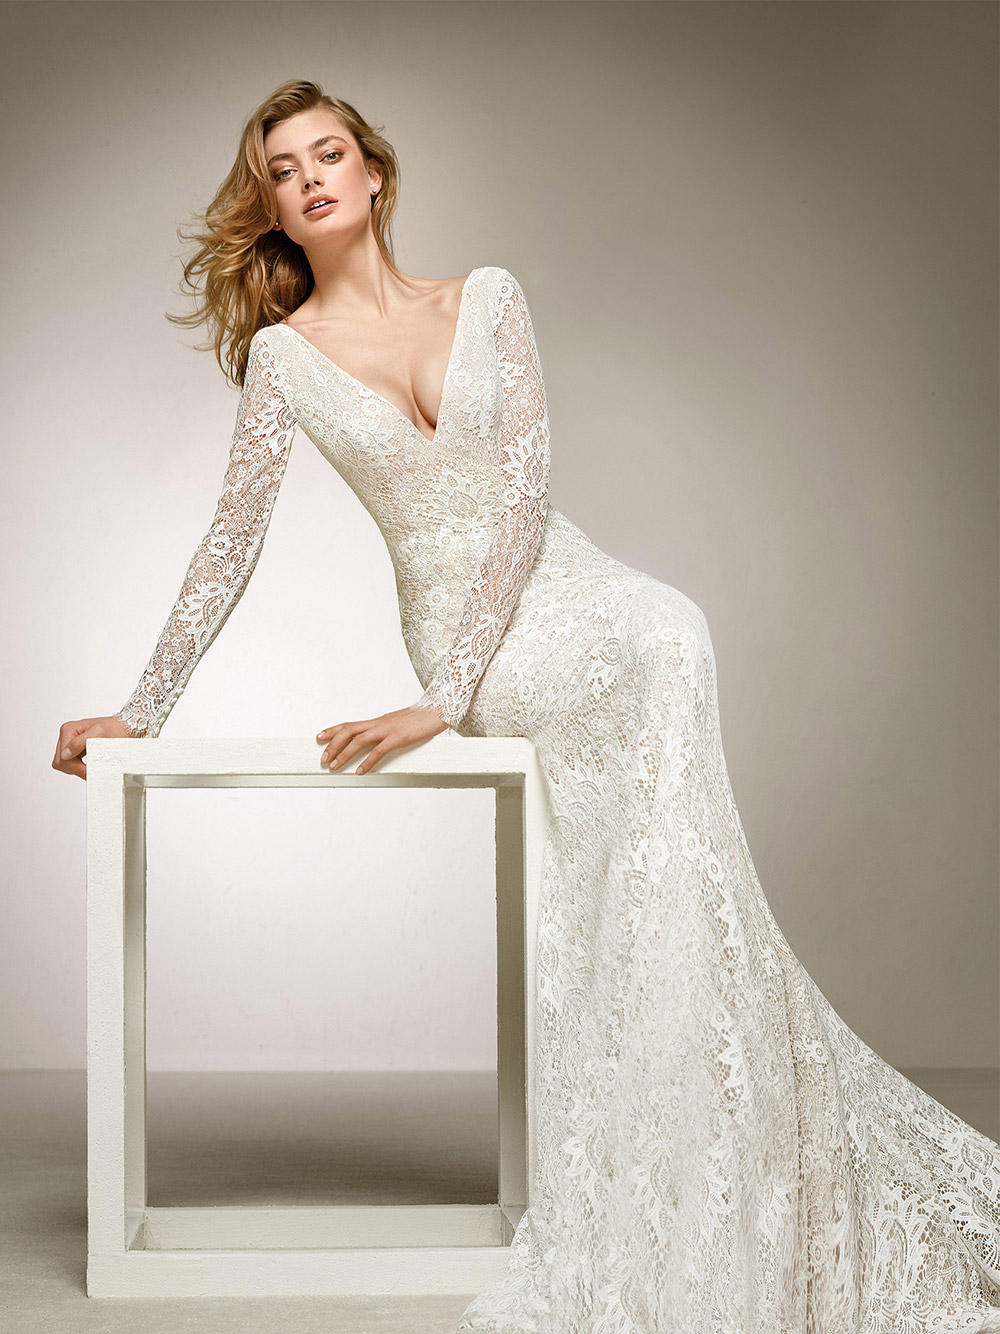 Dances - Pronovias 2018 Bridal Collection. www.theweddingnotebook.com